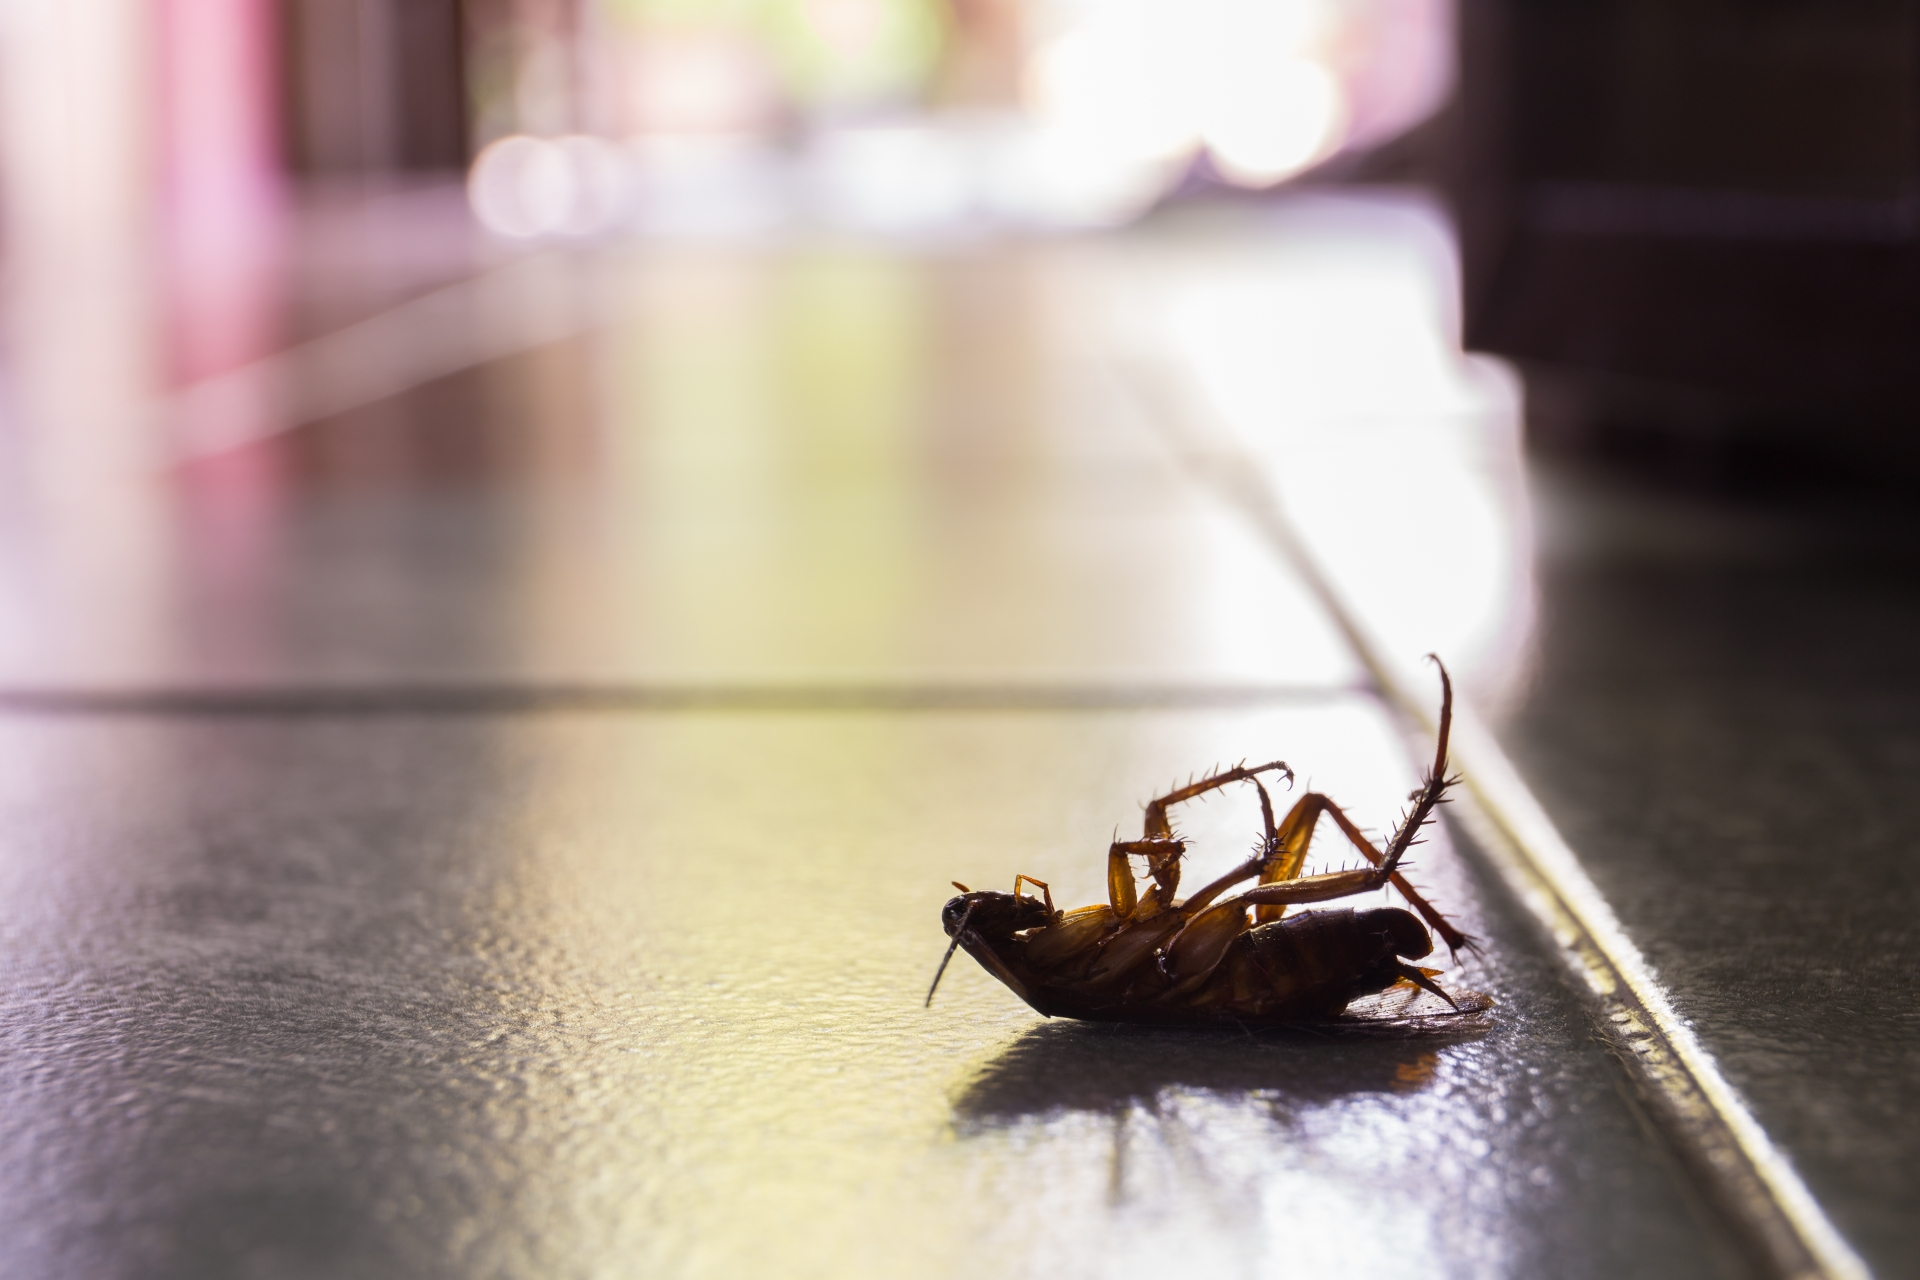 Cockroach Control, Pest Control in Deptford, SE8. Call Now 020 8166 9746